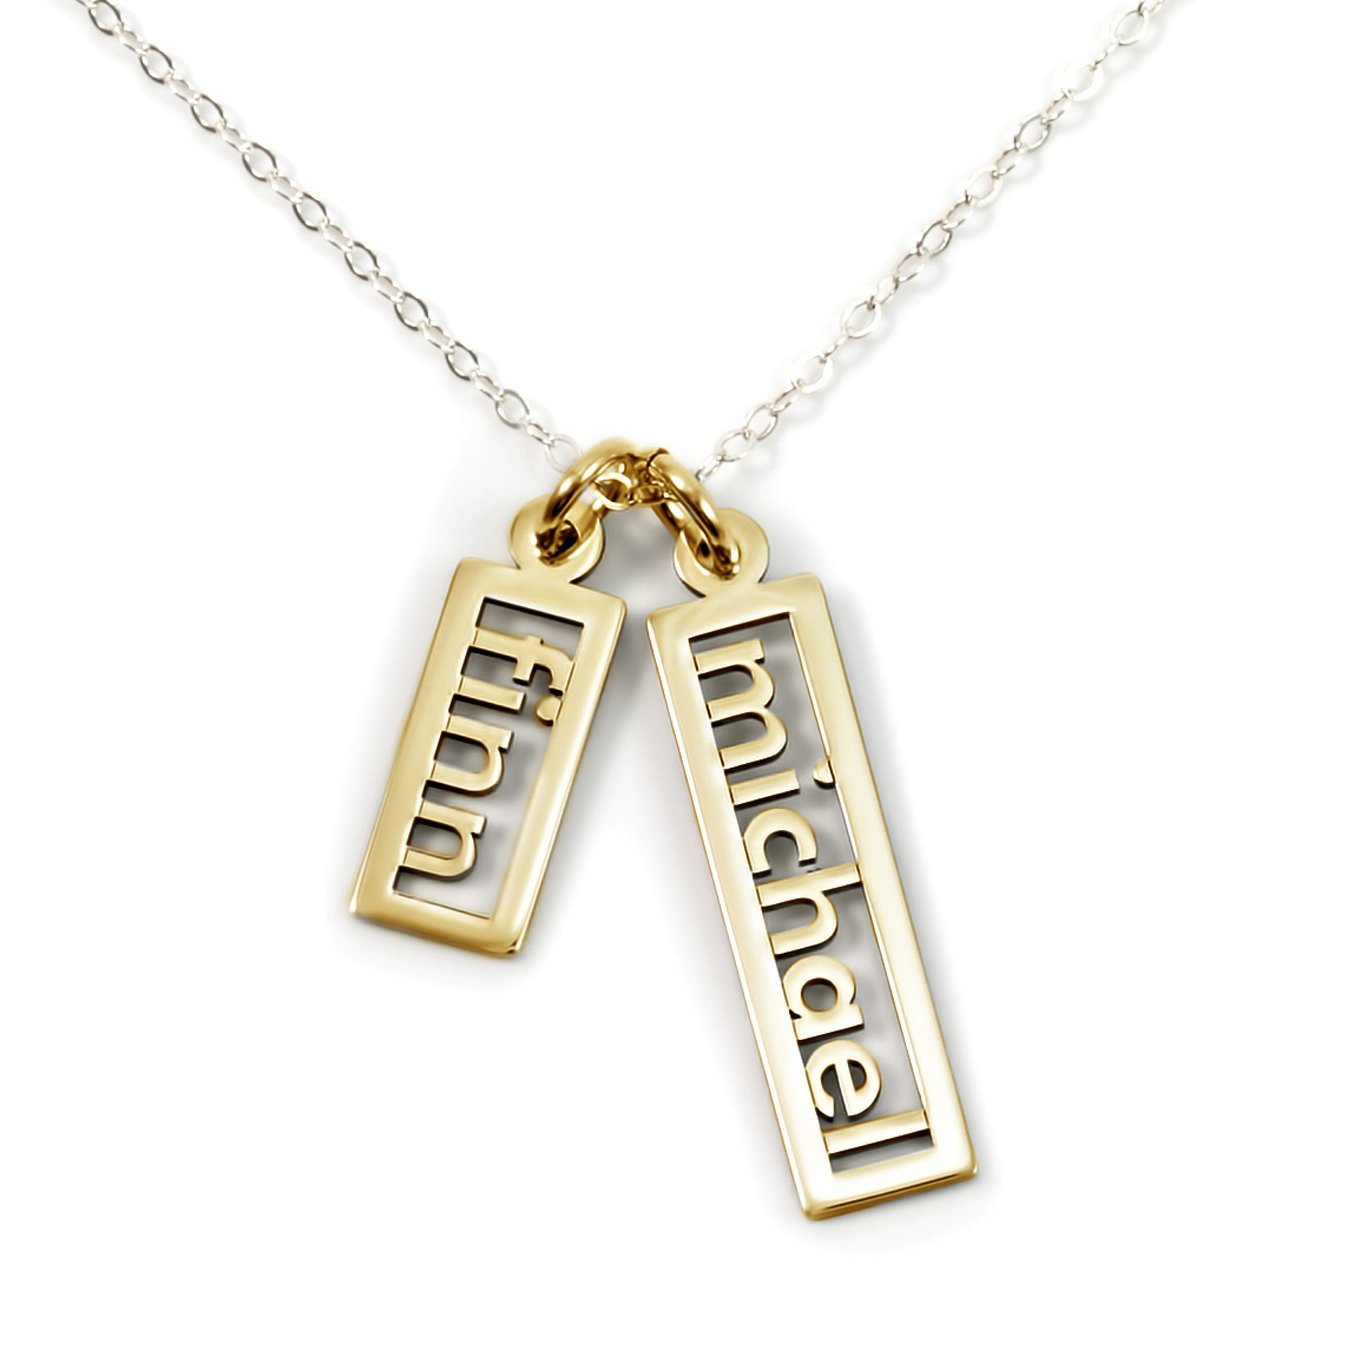 AJ's Collection Personalized Necklace Open Double Sterling Silver or 14k Gold Plate over Sterling Silver (20) by AJ's Collection (Image #2)